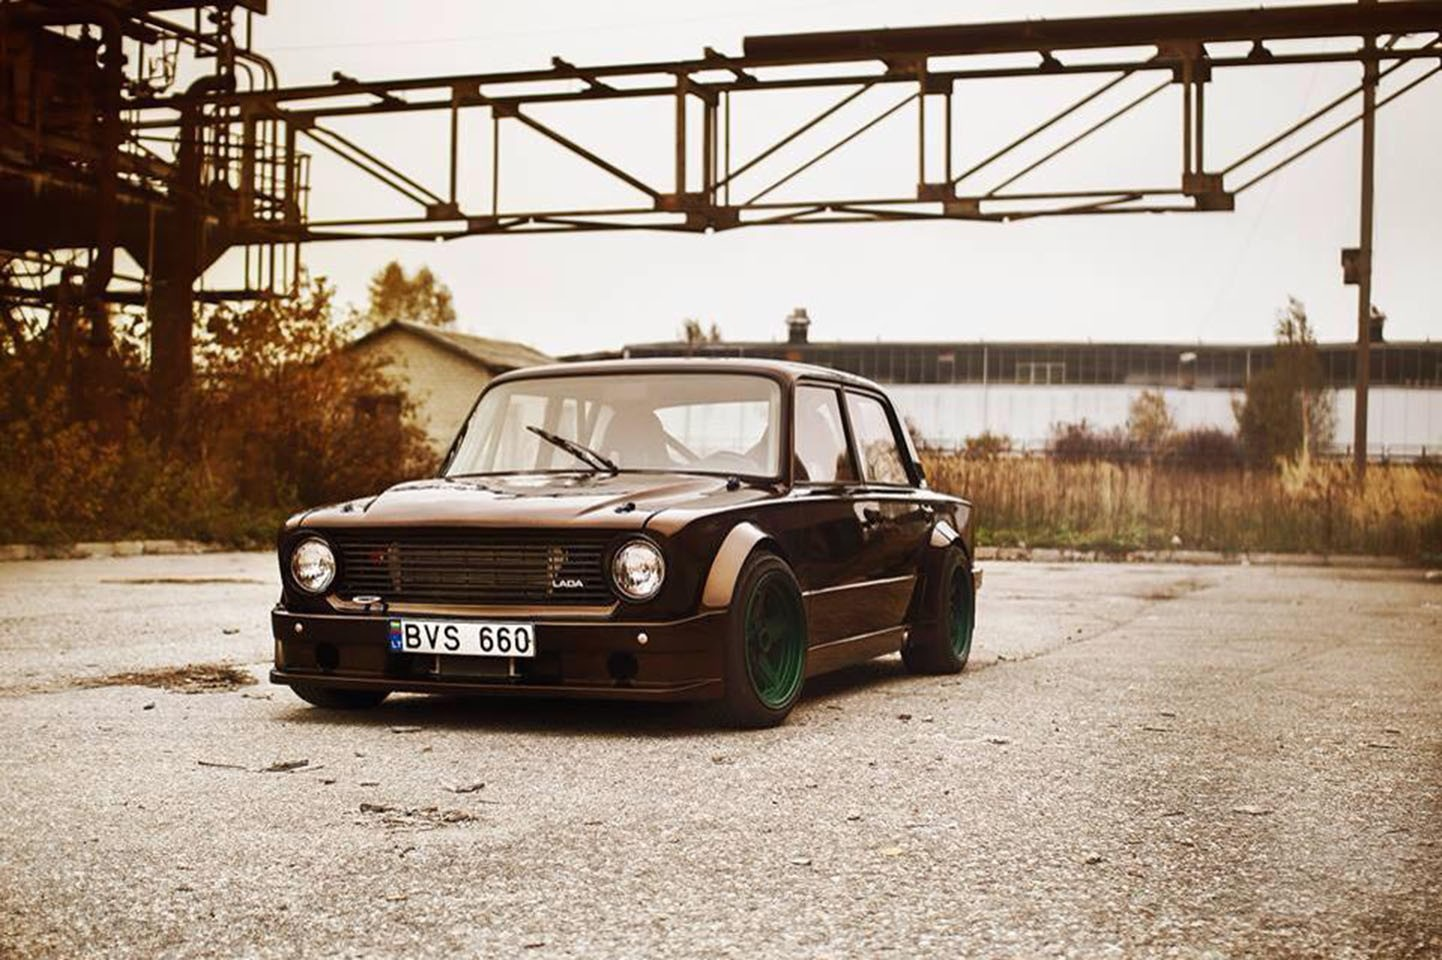 Muscle Cars Old Car Car Drift Evening LADA Wallpapers